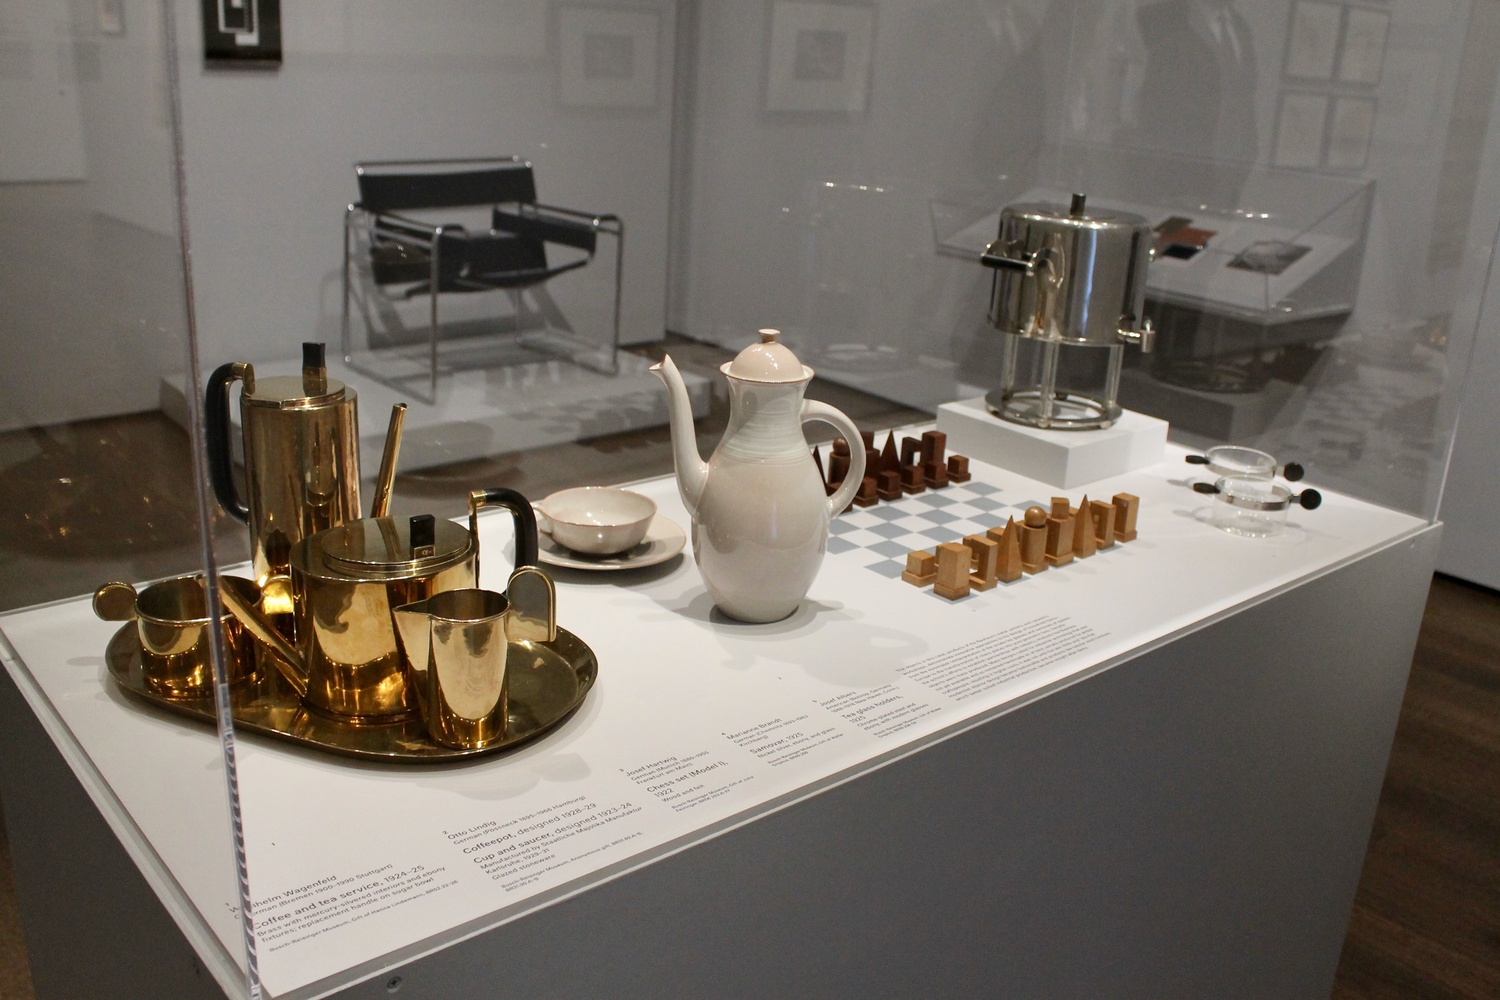 Bauhaus-inspired household objects at the Harvard Art Museums.